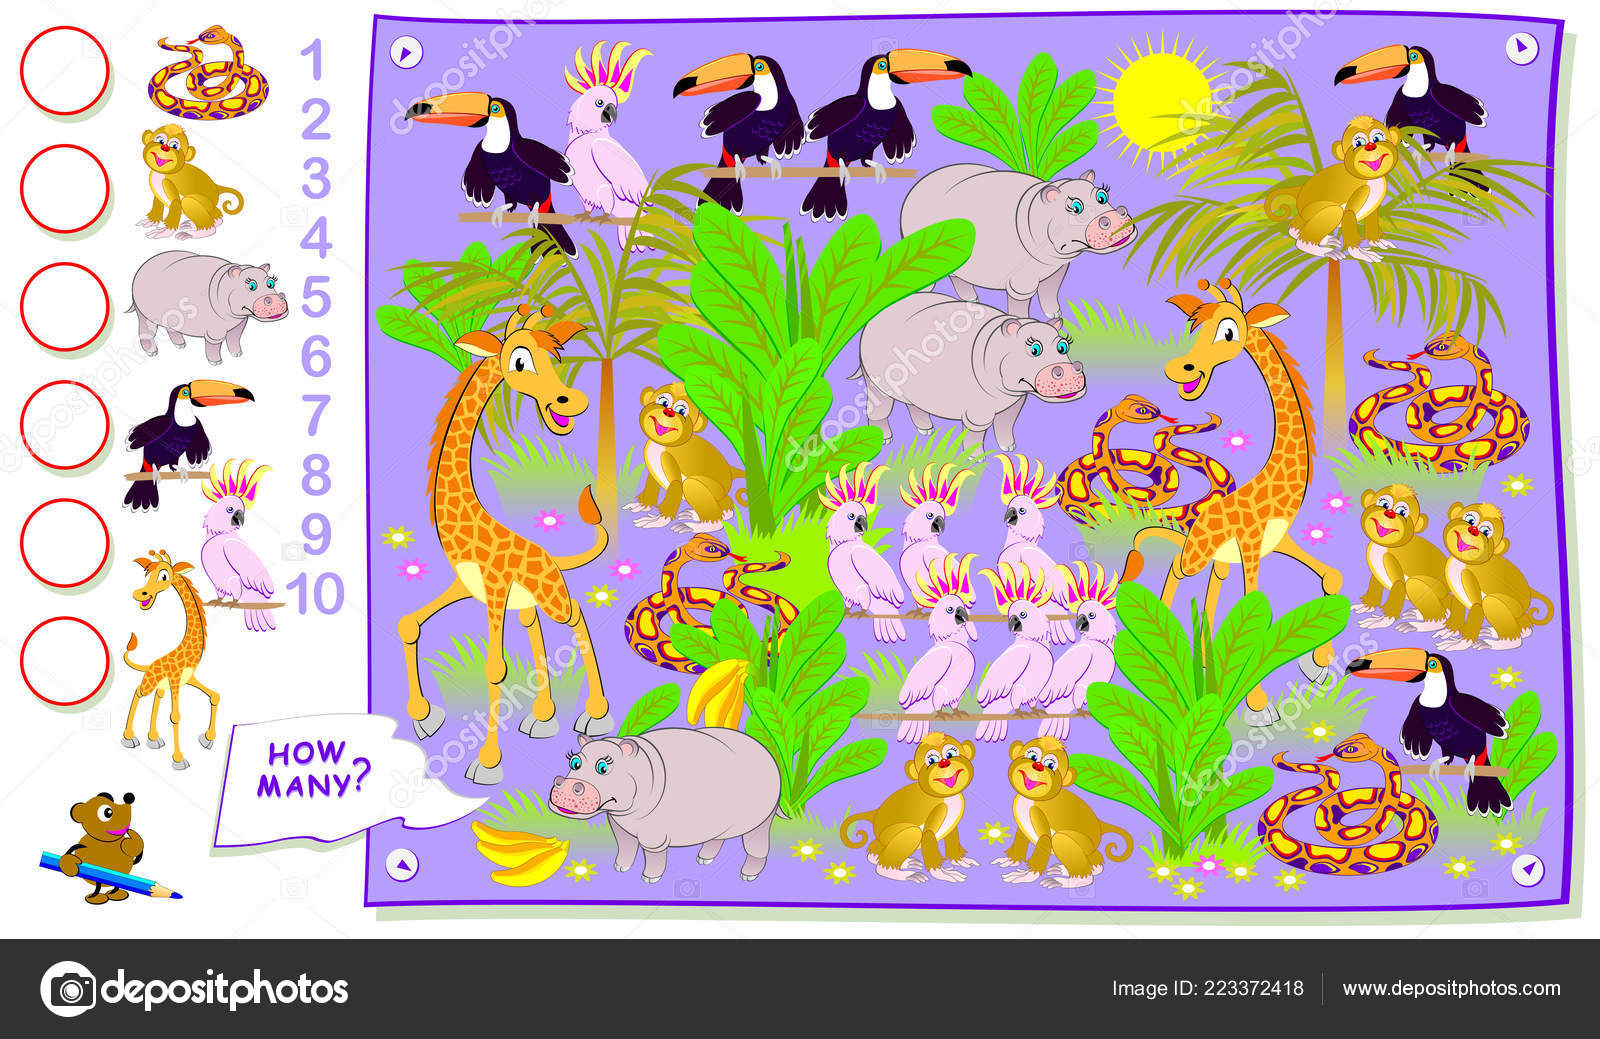 Educational Page Kids How Many Animals Hide Jungle Count Quantity